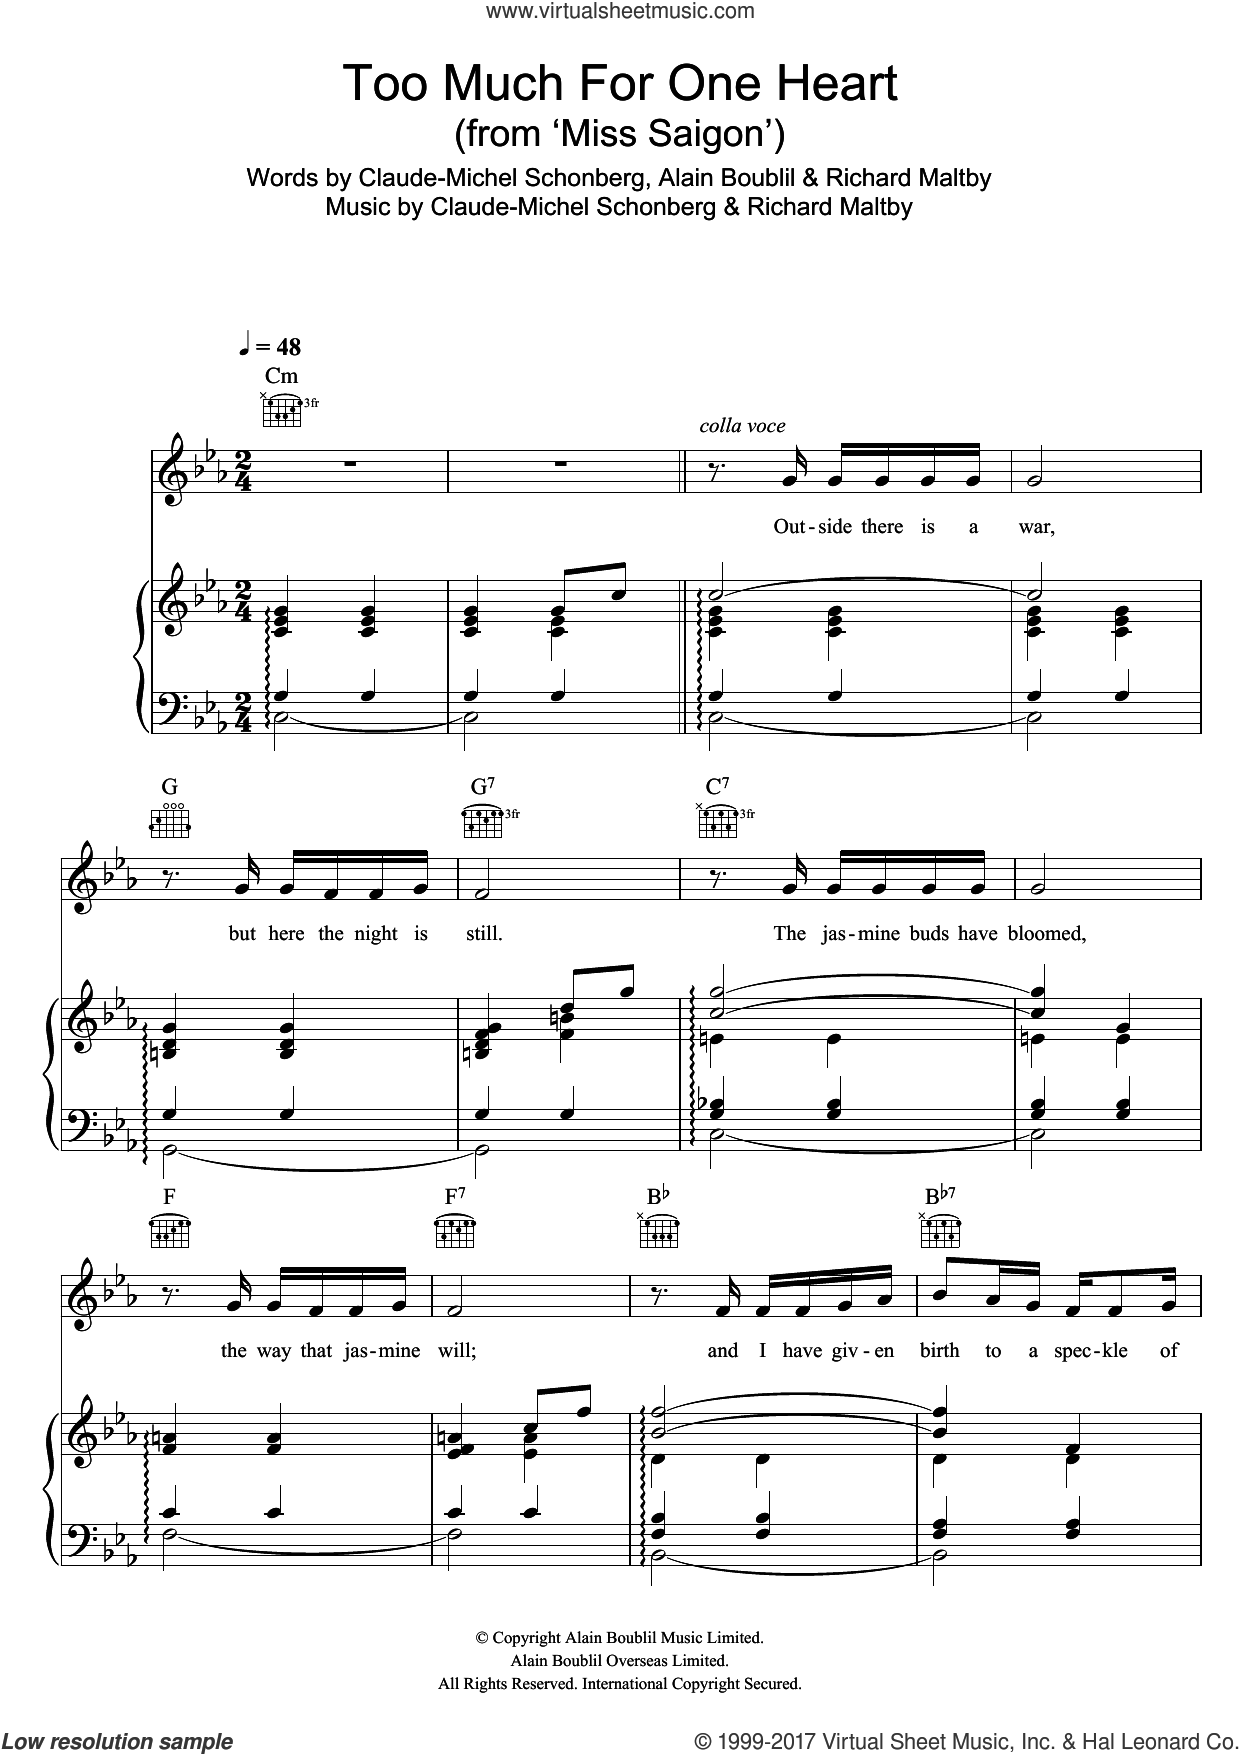 Too Much For One Heart (from Miss Saigon) sheet music for voice, piano or guitar by Boublil and Schonberg, Alain Boublil, Claude-Michel Schonberg and Richard Maltby, Jr., intermediate skill level